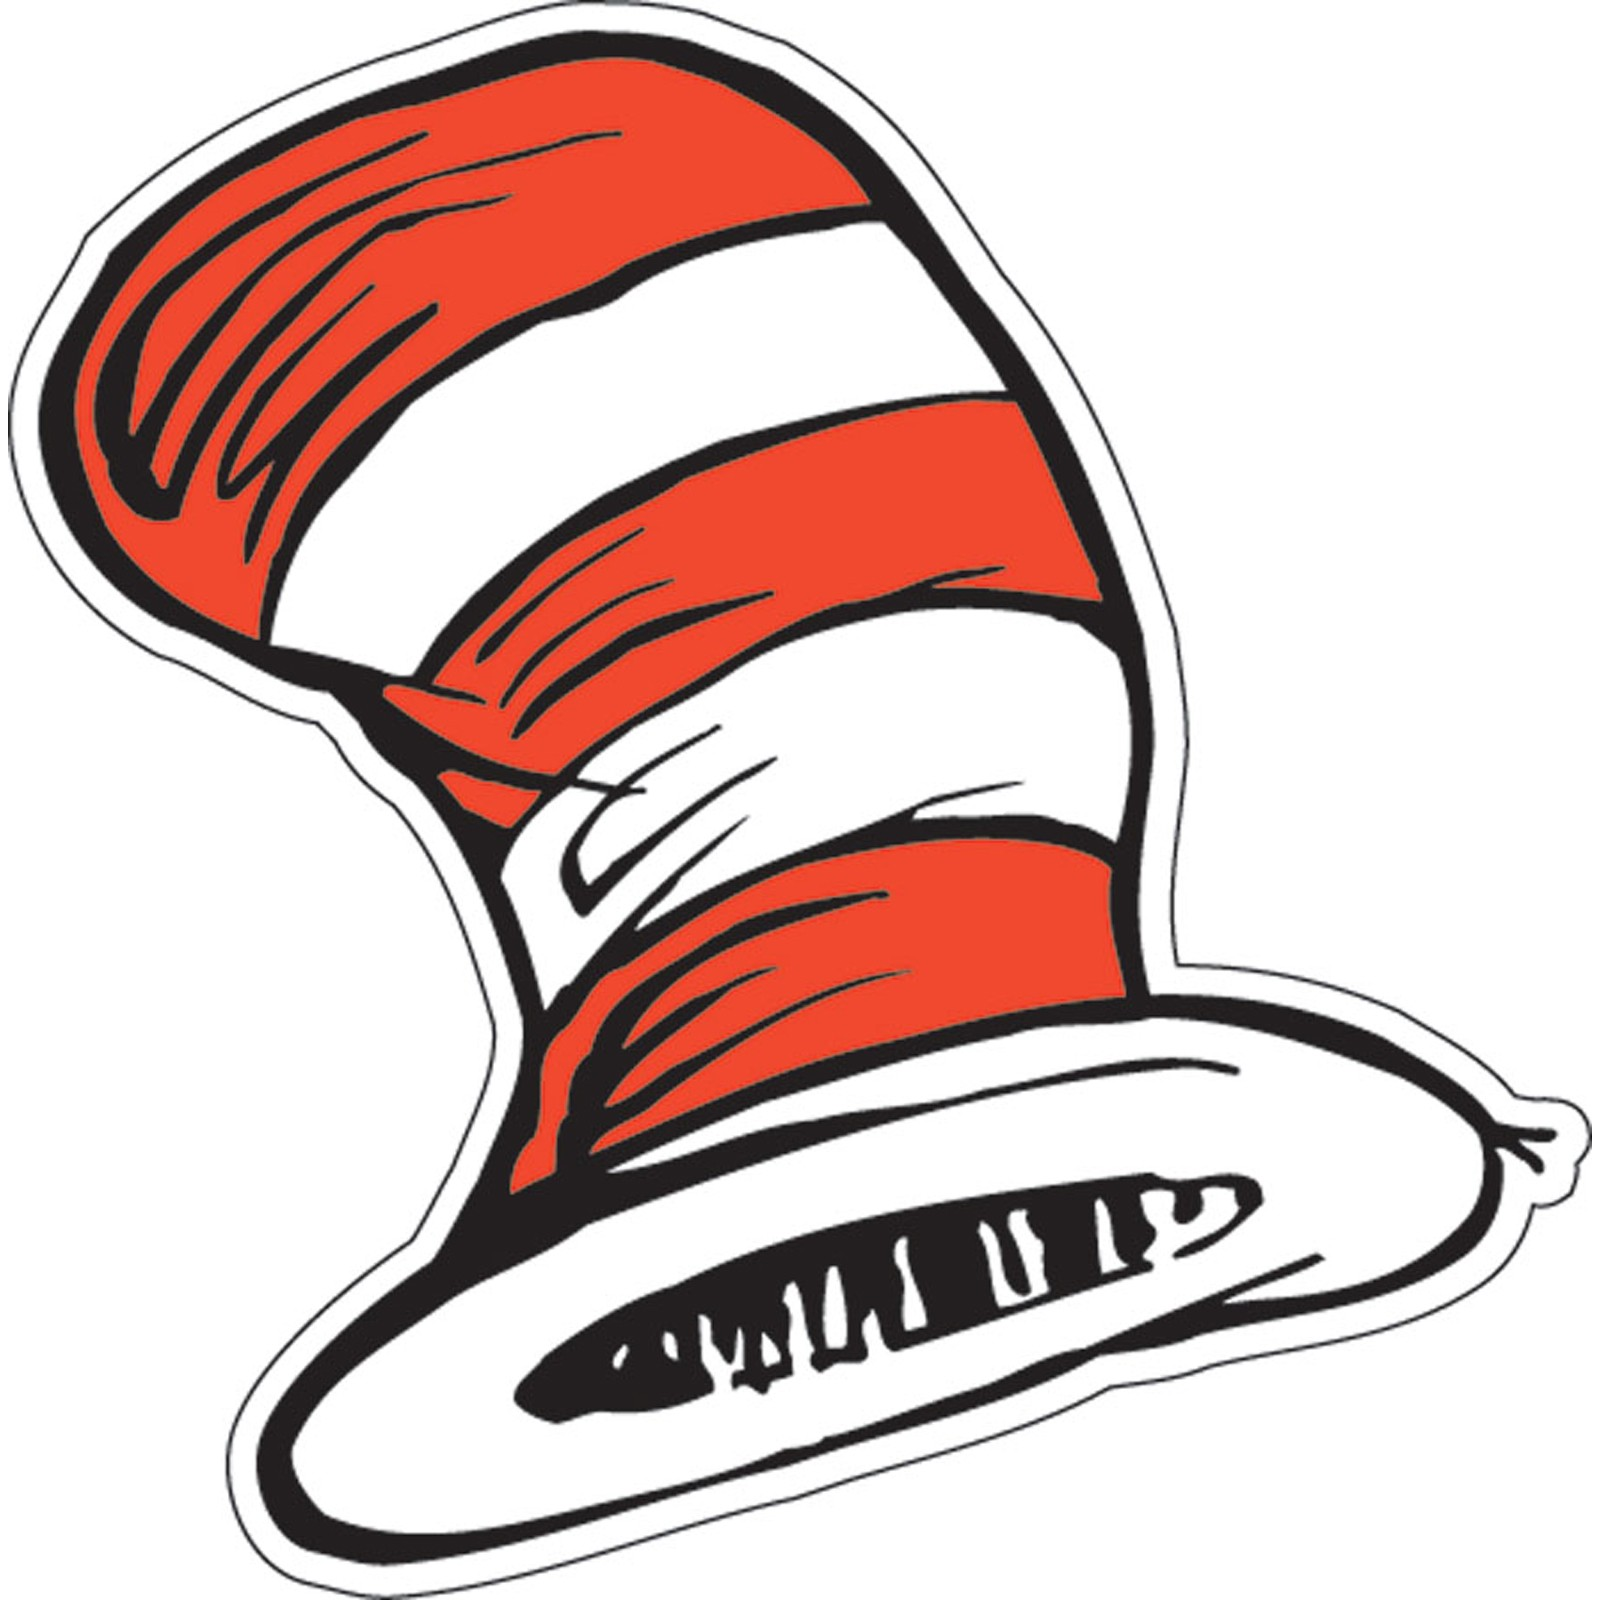 dr-seuss-hat-image-cat-in-the-hat.jpg